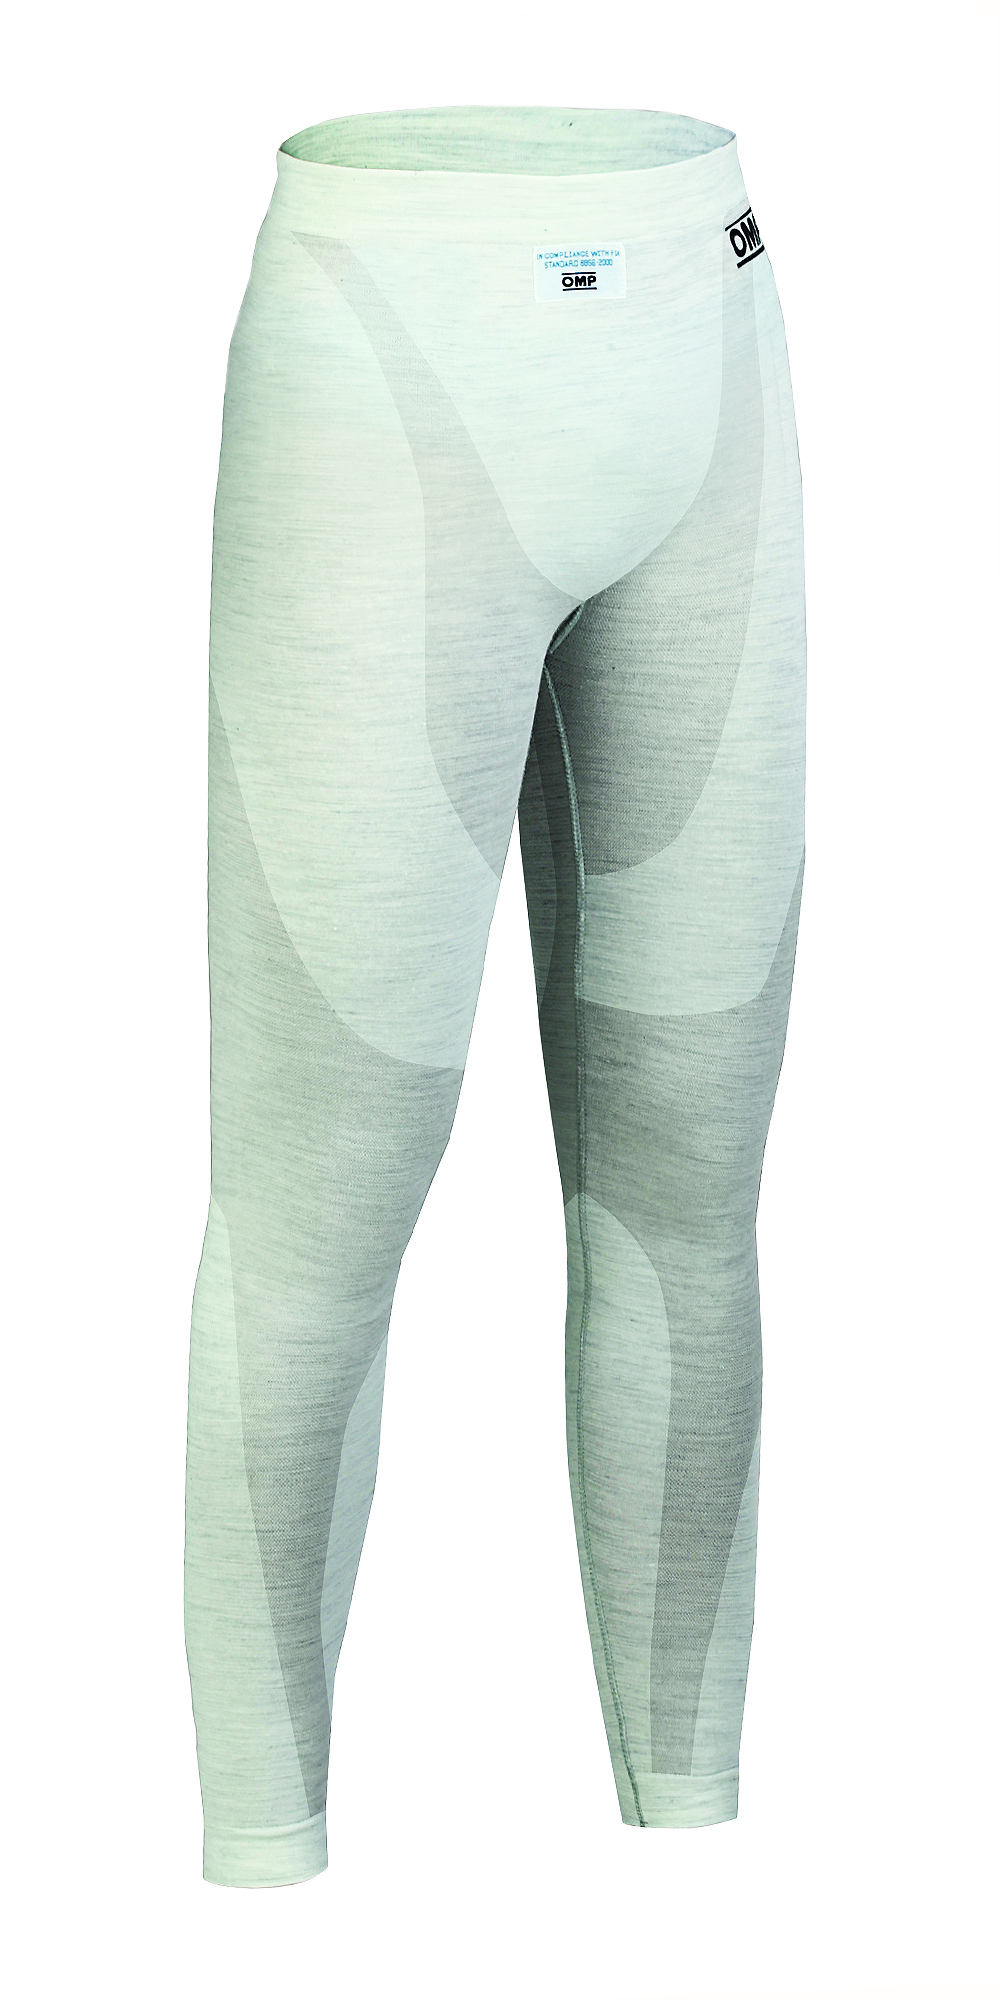 Omp One Long Johns In White Nomex Underwear Bottoms